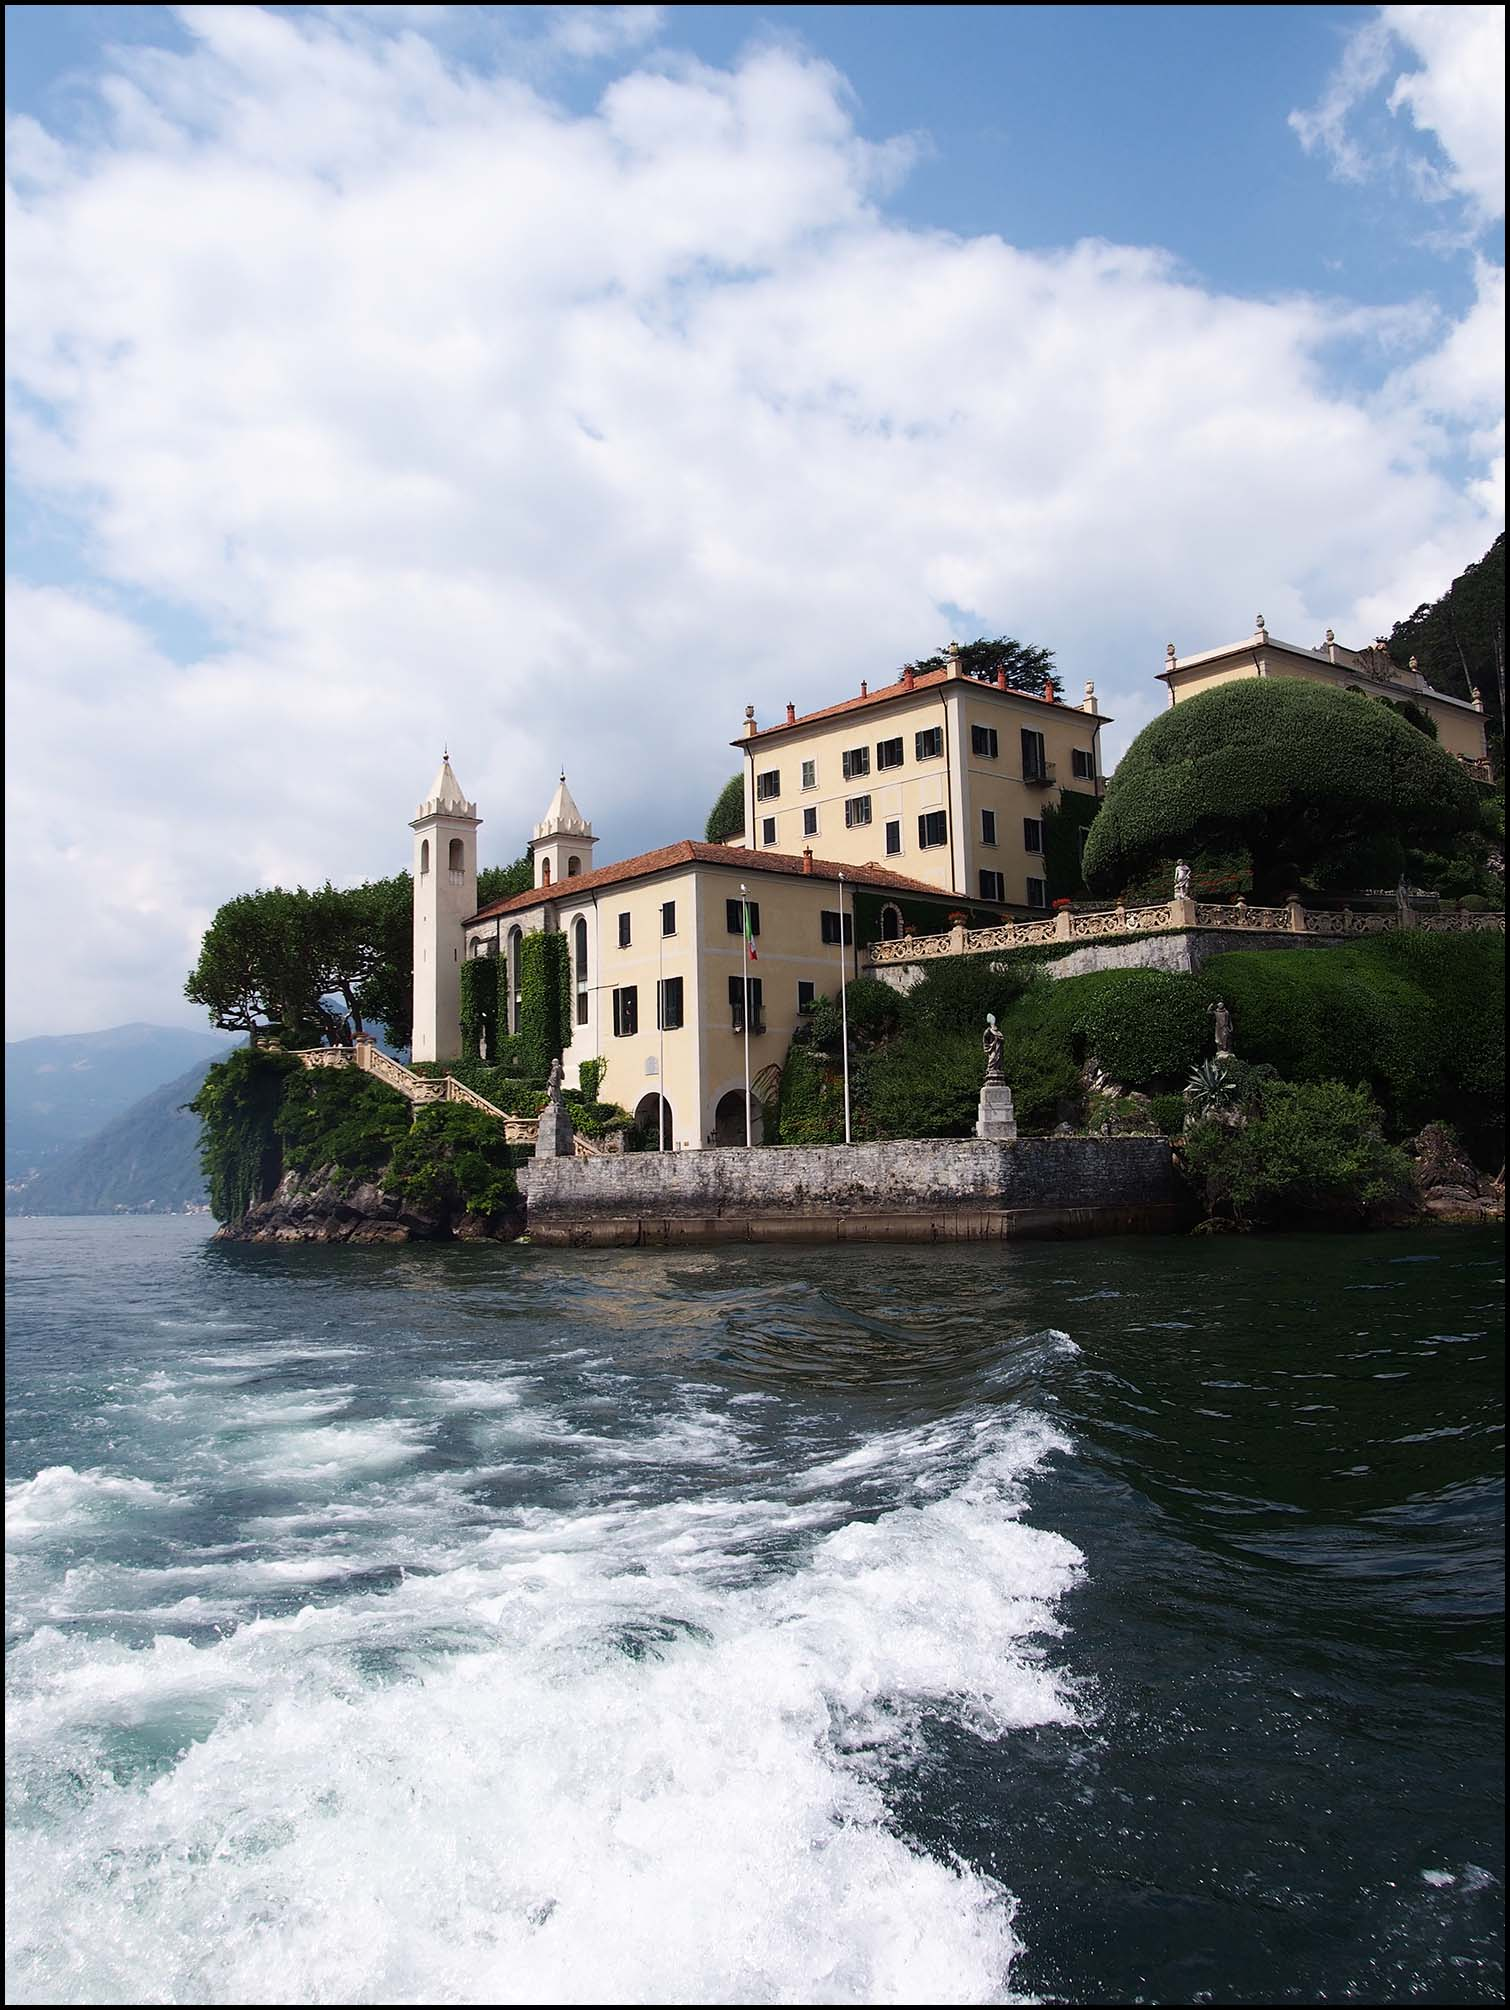 Villa Balbianello viewed from the lake